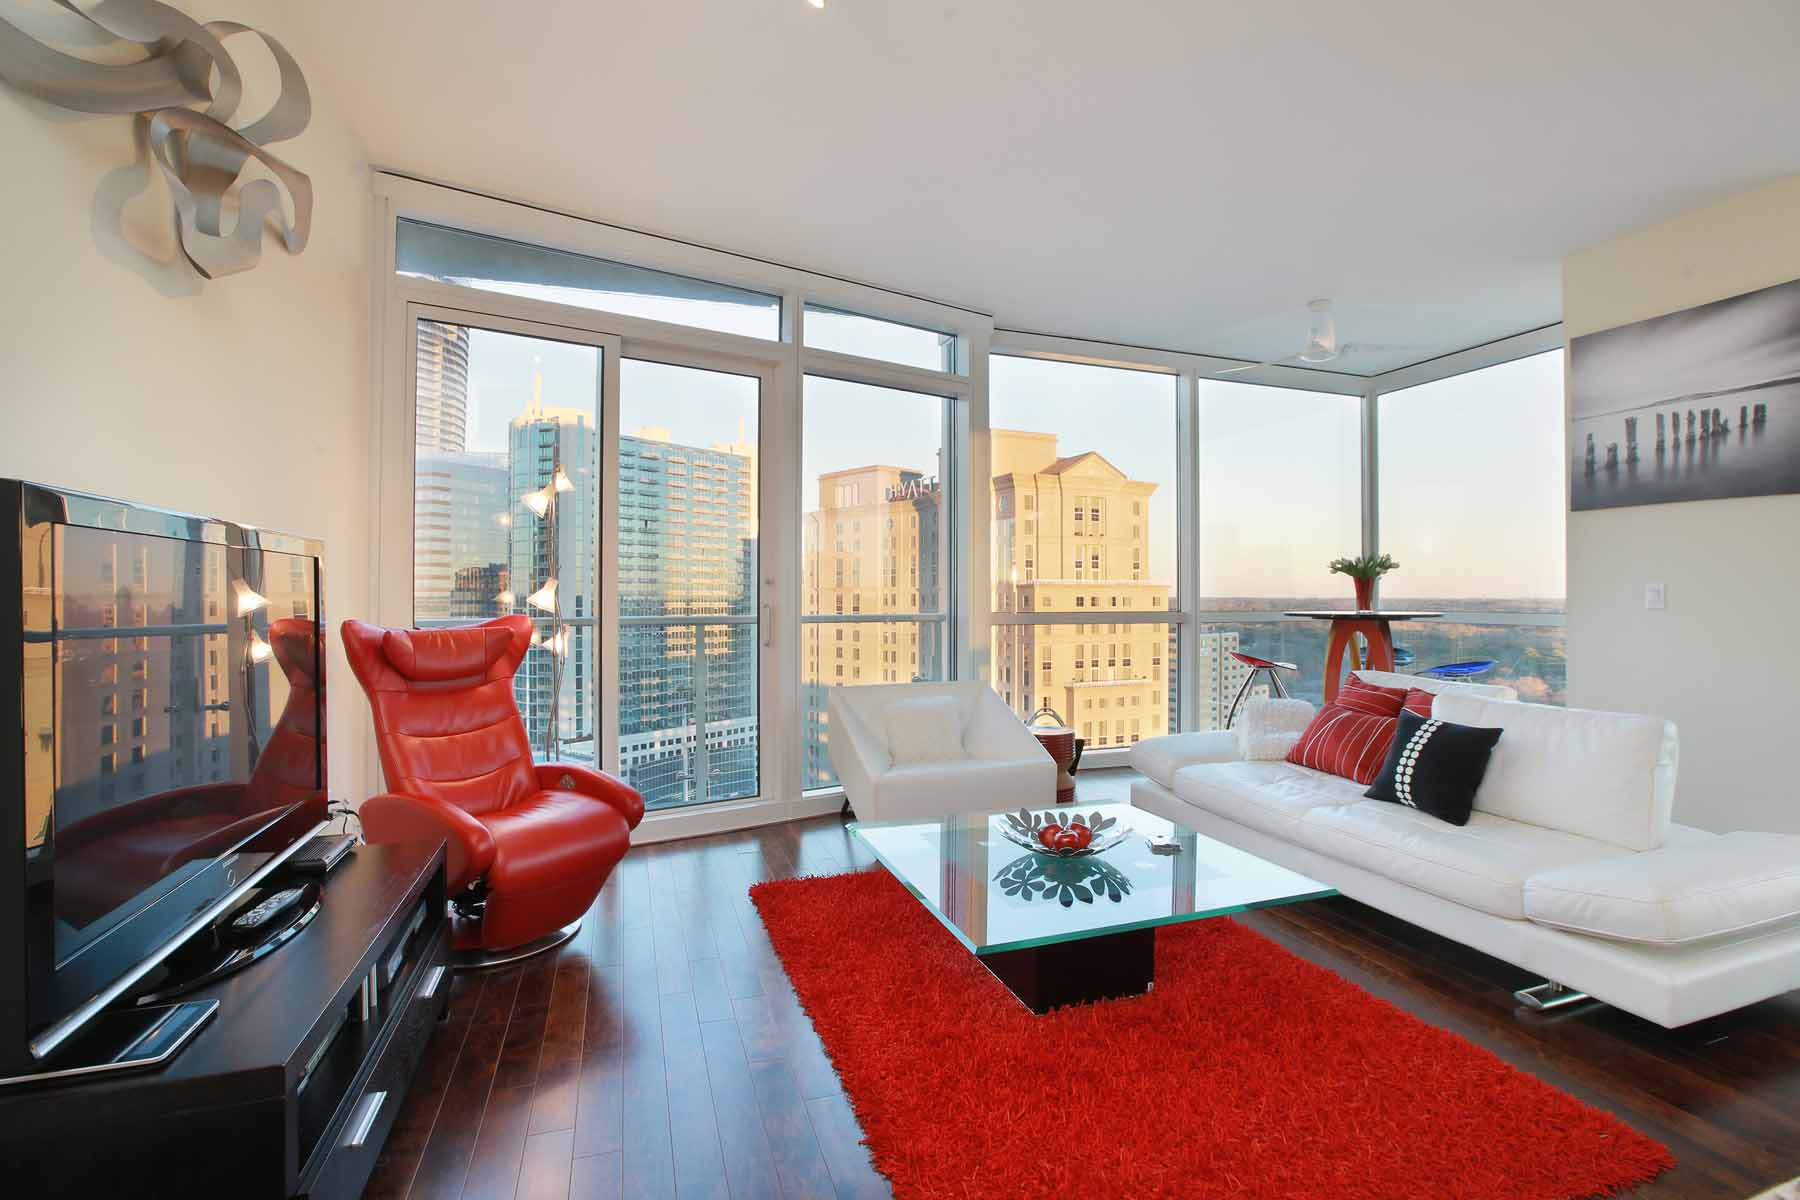 Property For Sale at Rarely available corner one-bedroom unit at desirable Terminus in Buckhead